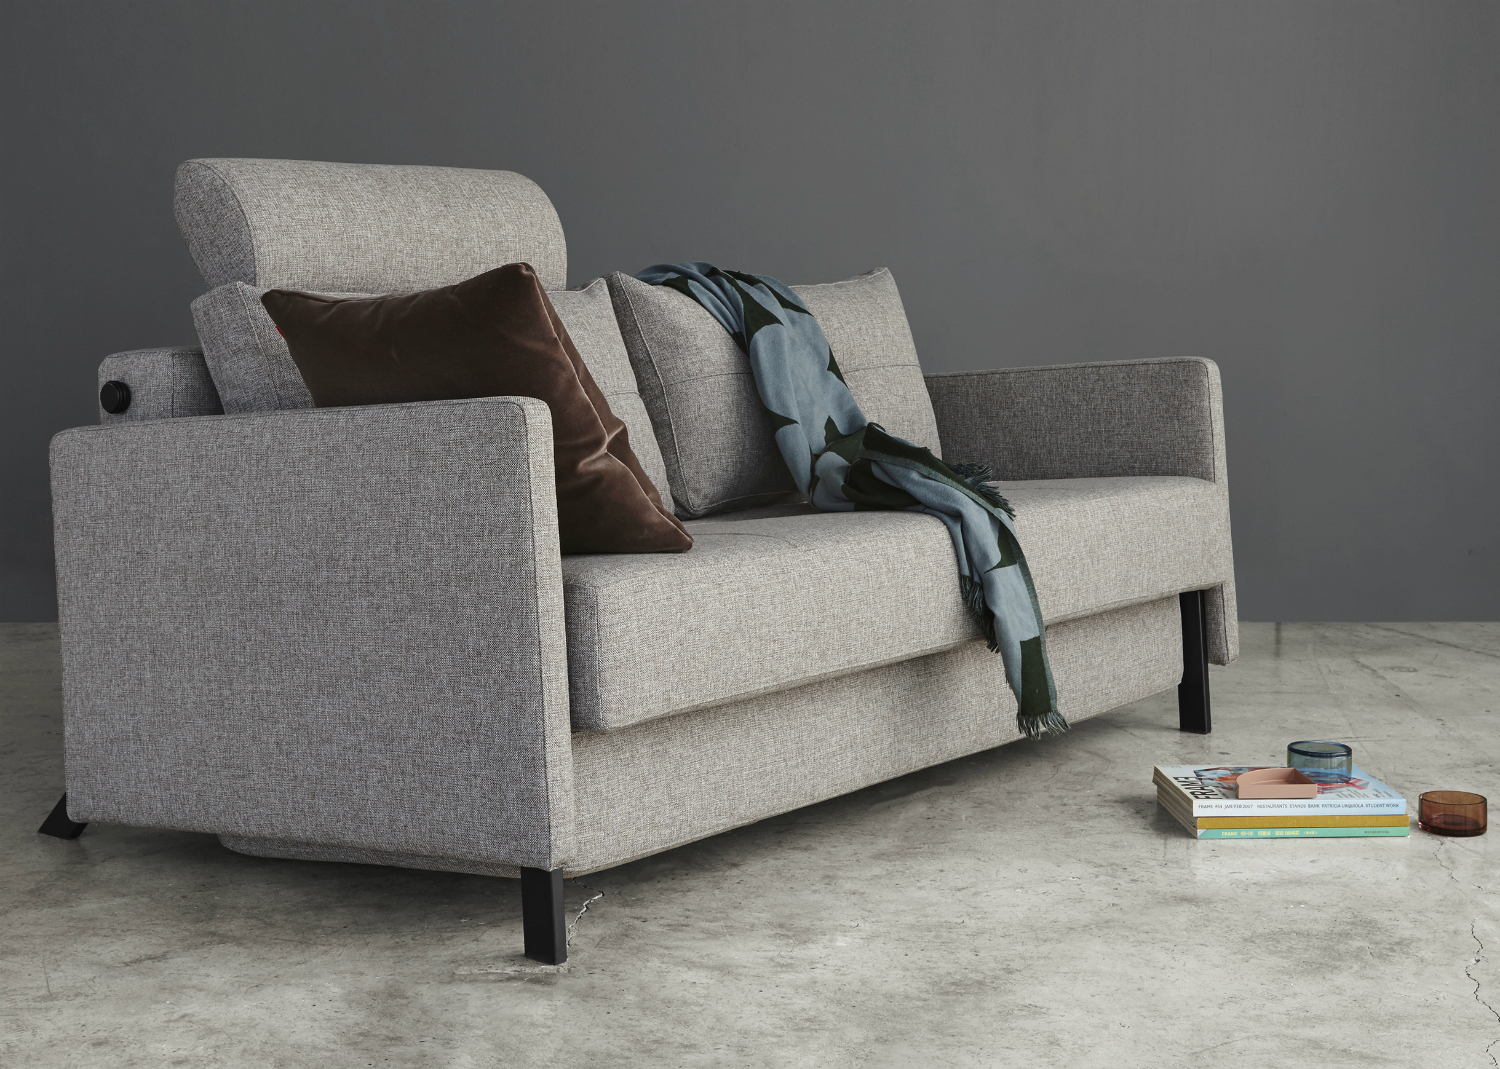 Cubed 160 fabric arm sofa bed innovation living melbourne for Sofa bed 160 x 200